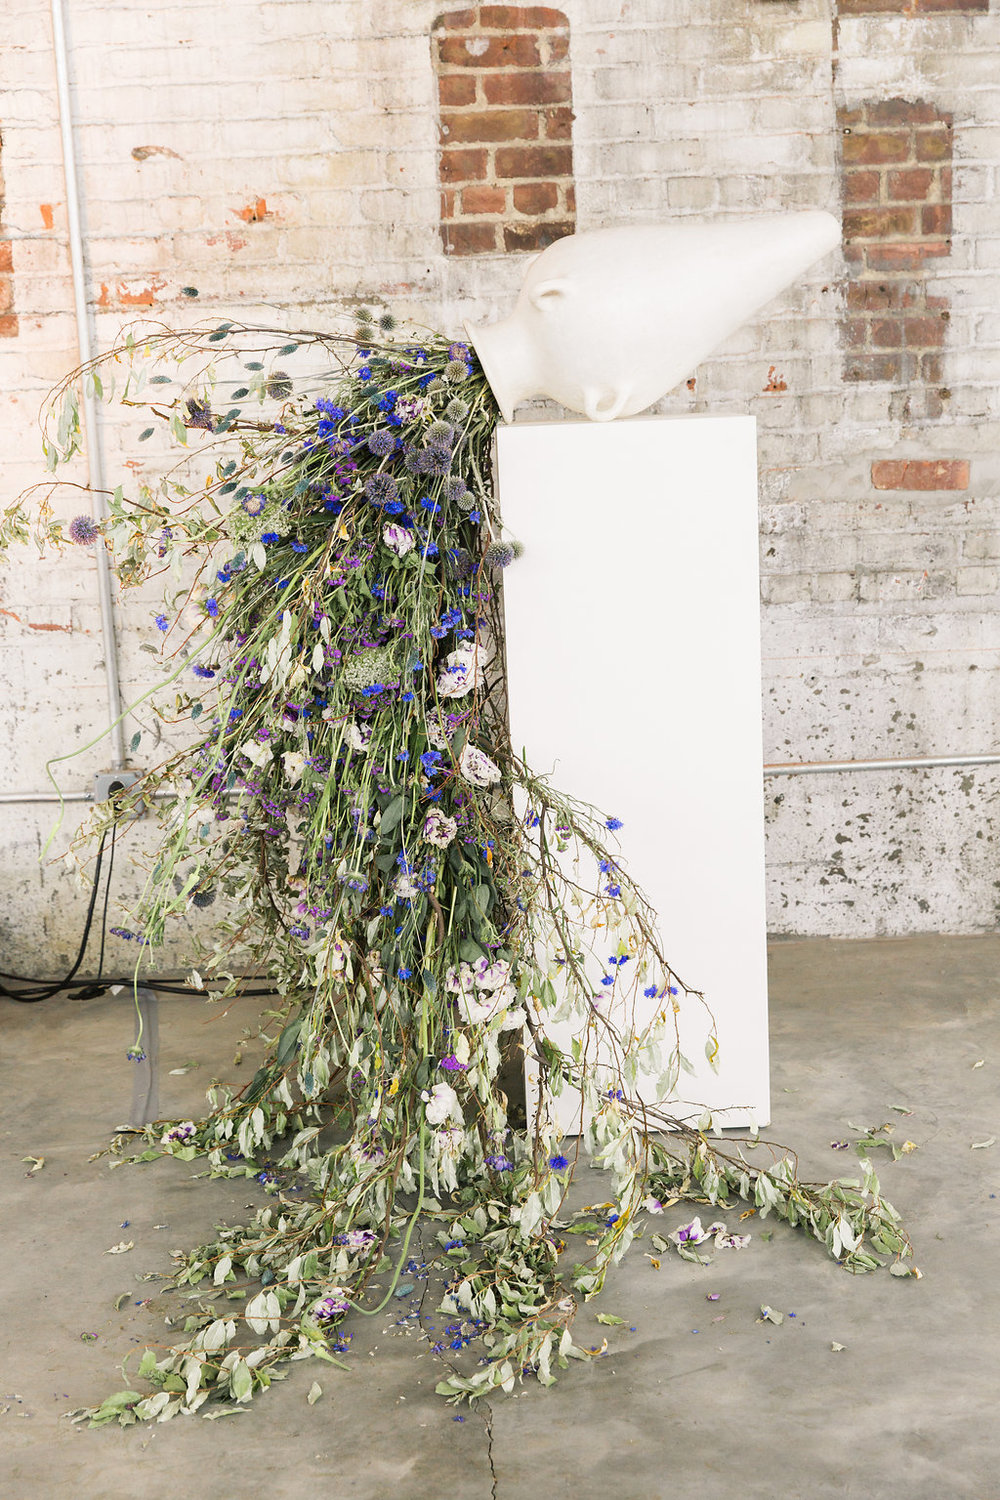 Floral installation by Saipua. Photo by Heather Waraksa